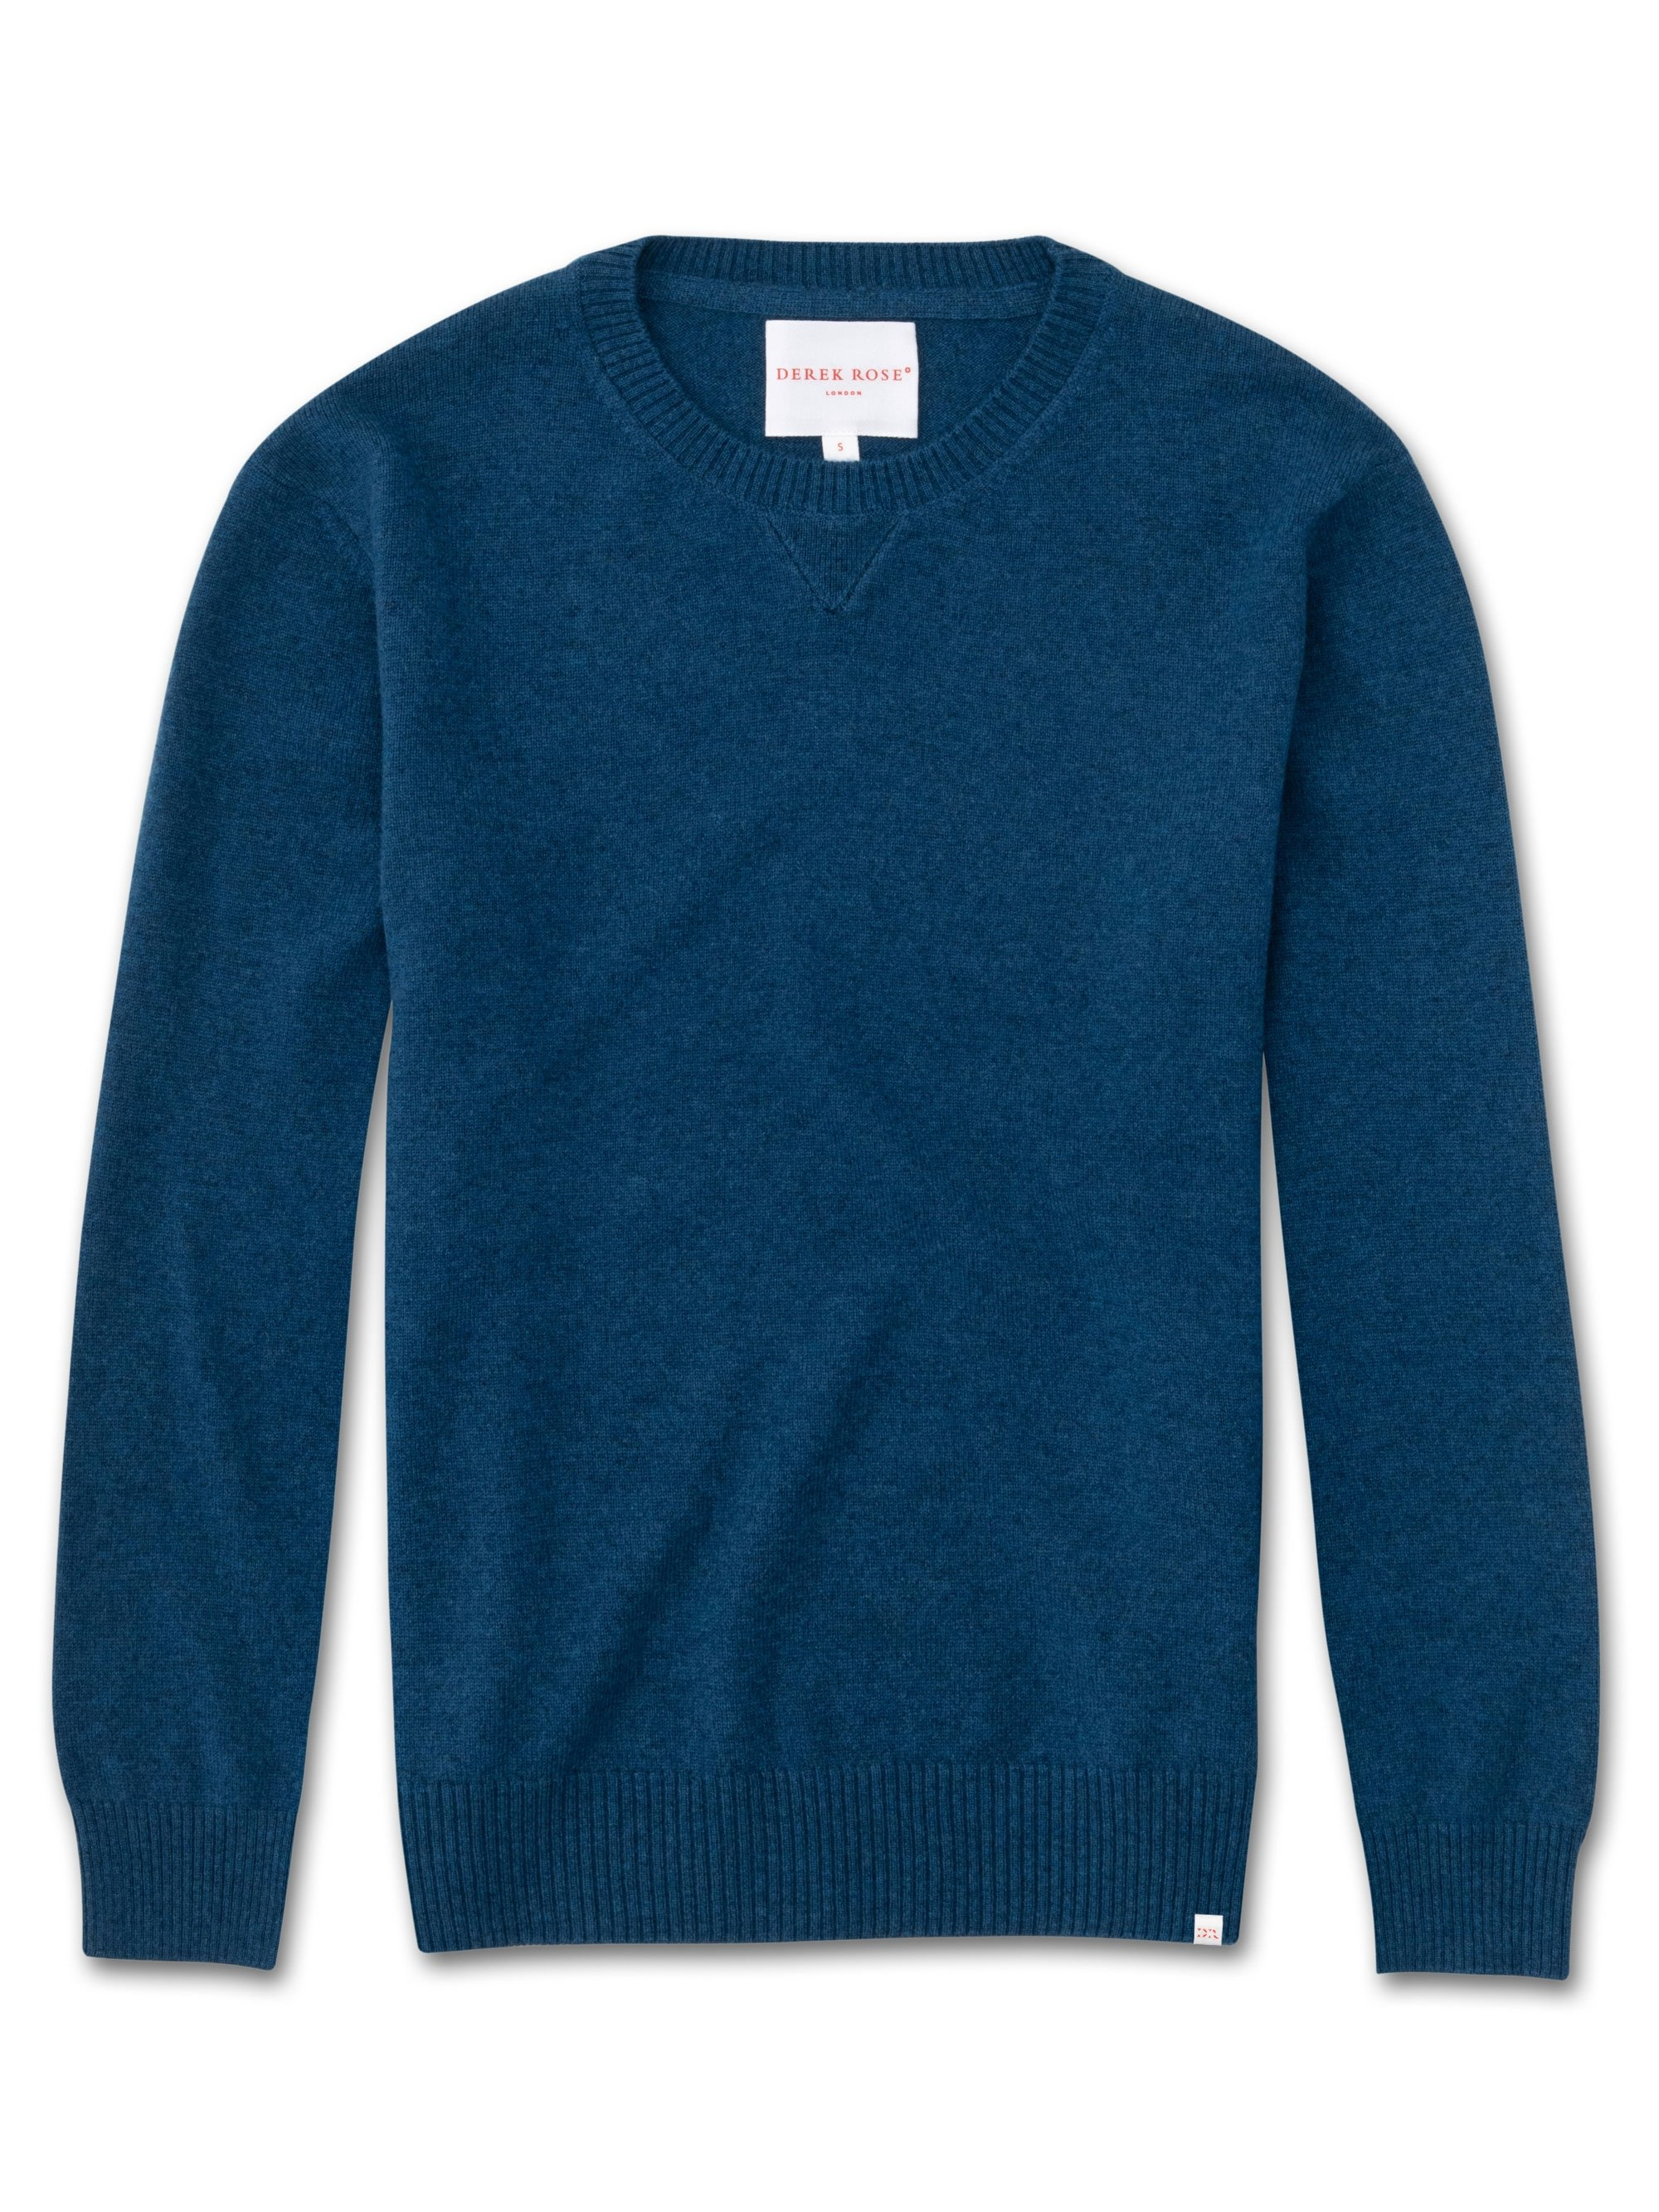 Women's Cashmere Sweater Finley Pure Cashmere Ocean